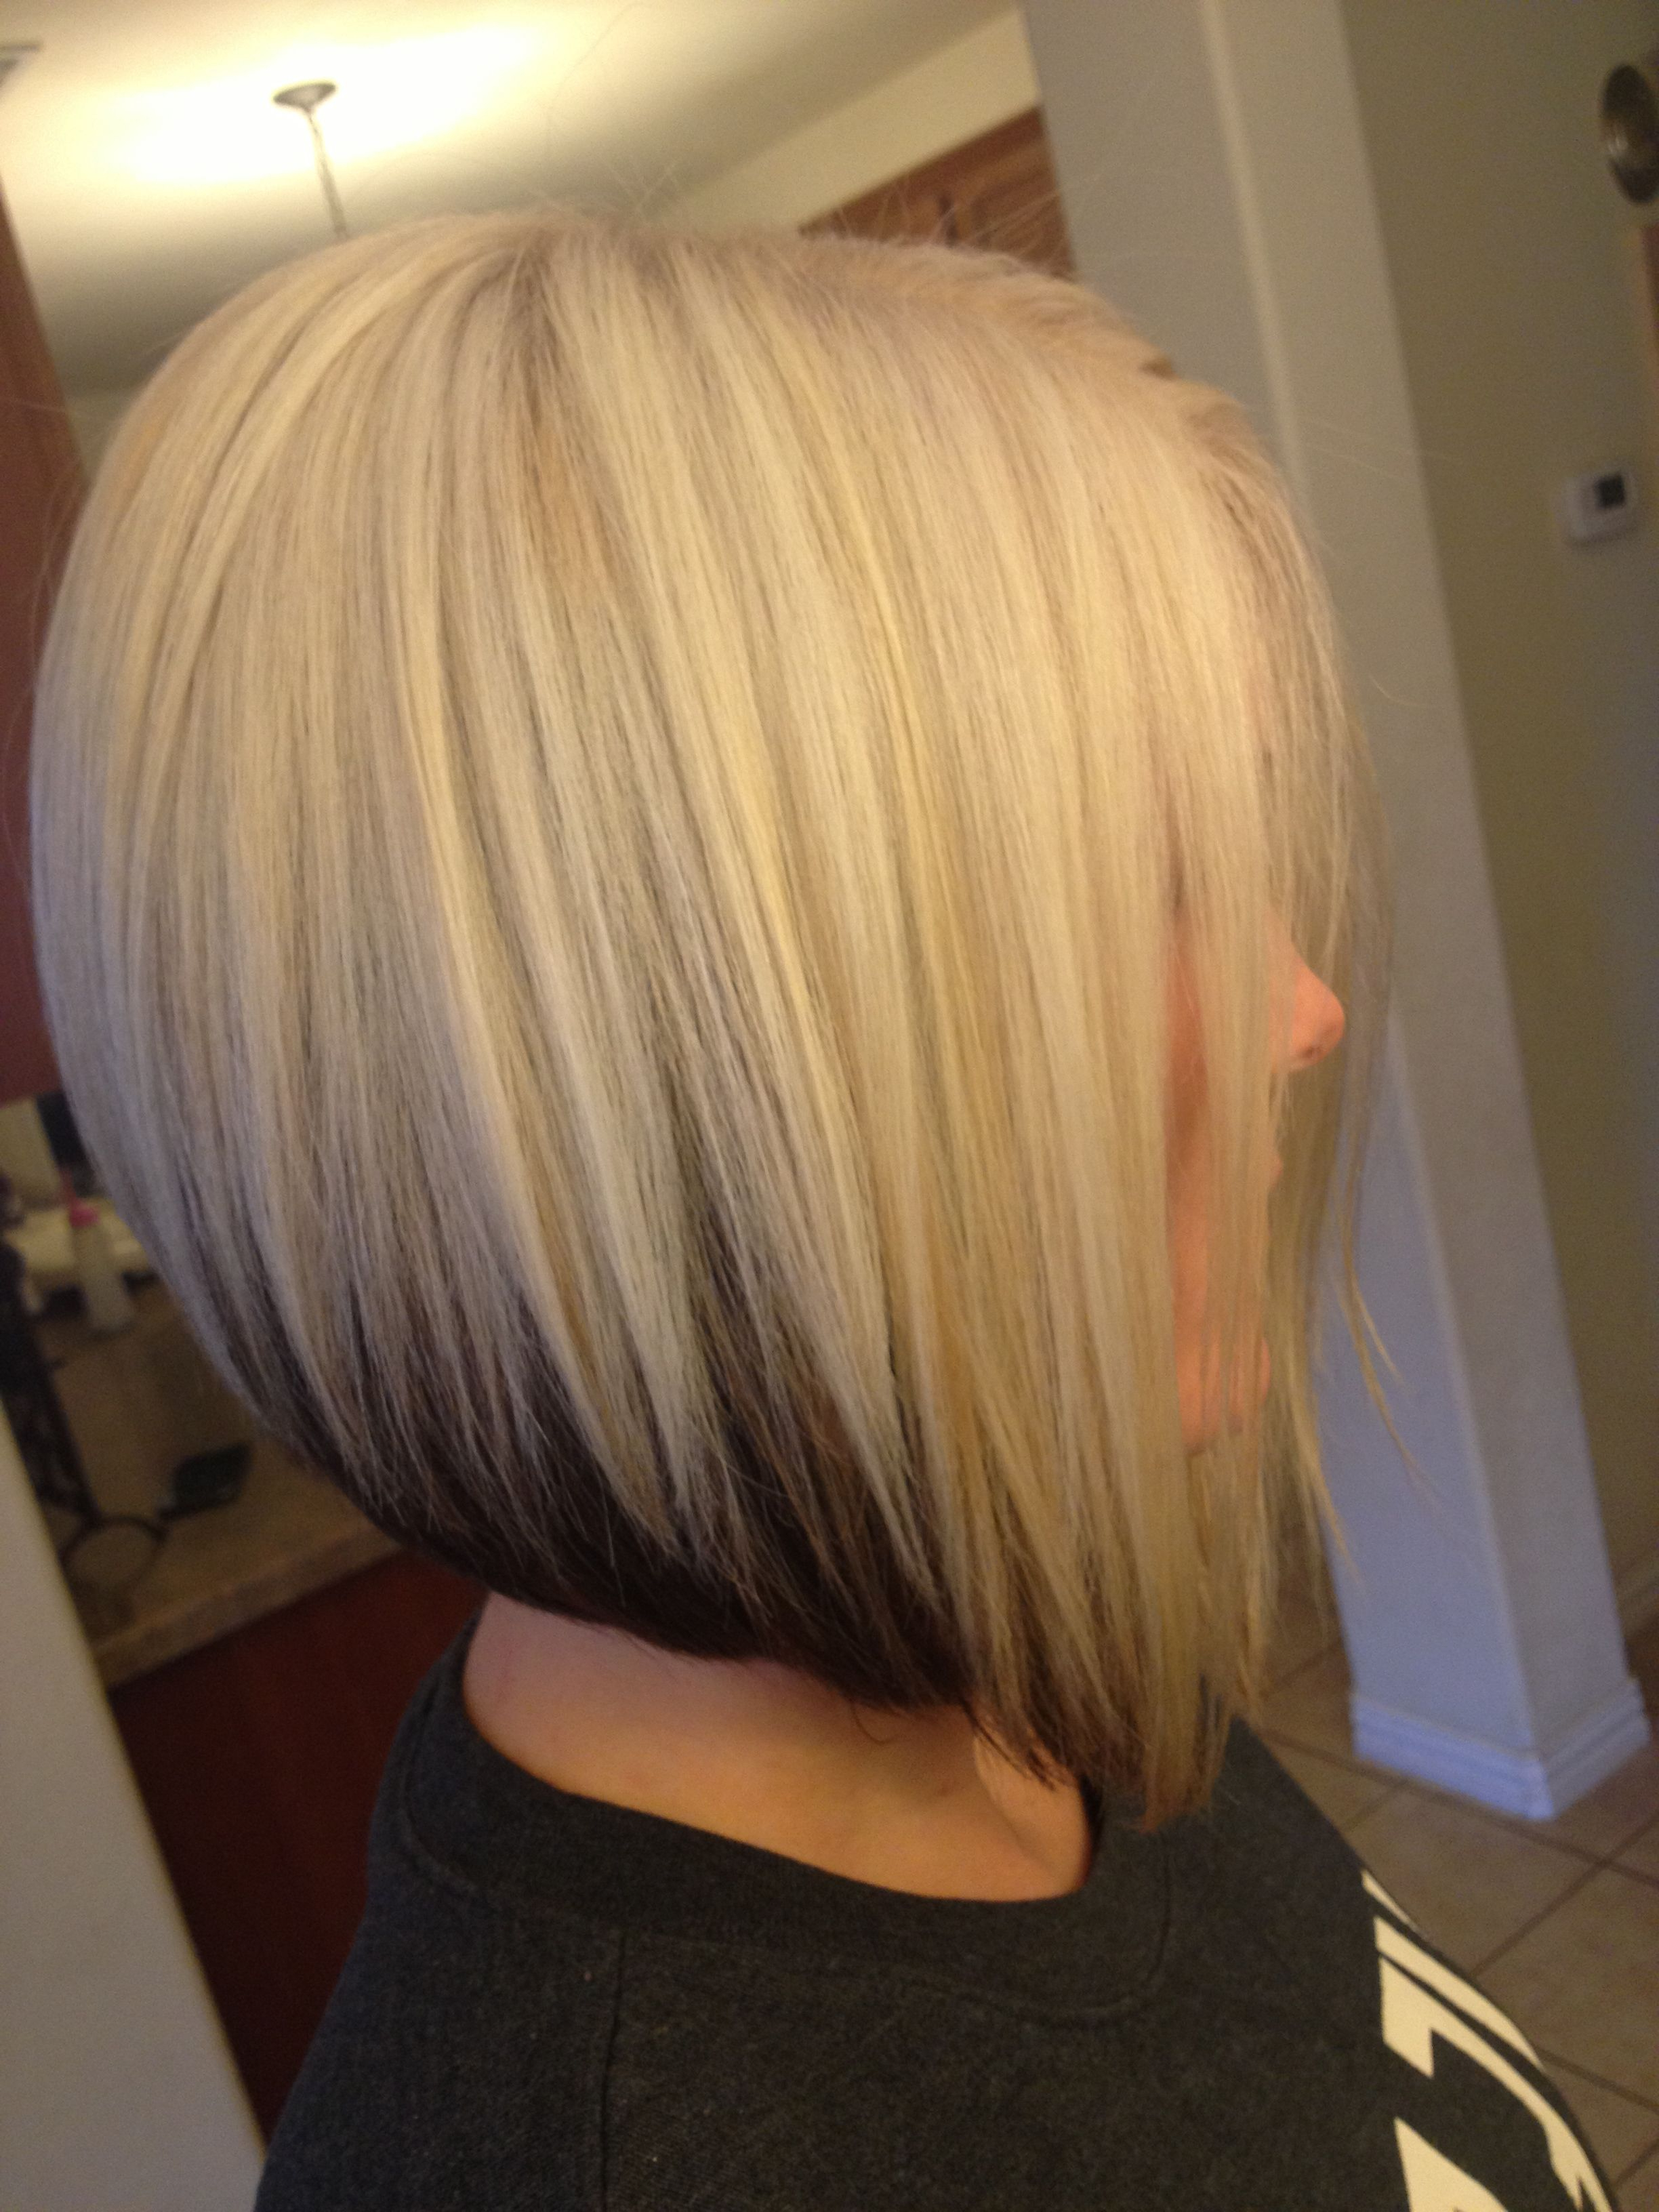 30 Short Bob Hairstyles For Women 2015 | Hair | Pinterest | Hair Regarding Brown And Blonde Graduated Bob Hairstyles (View 2 of 20)